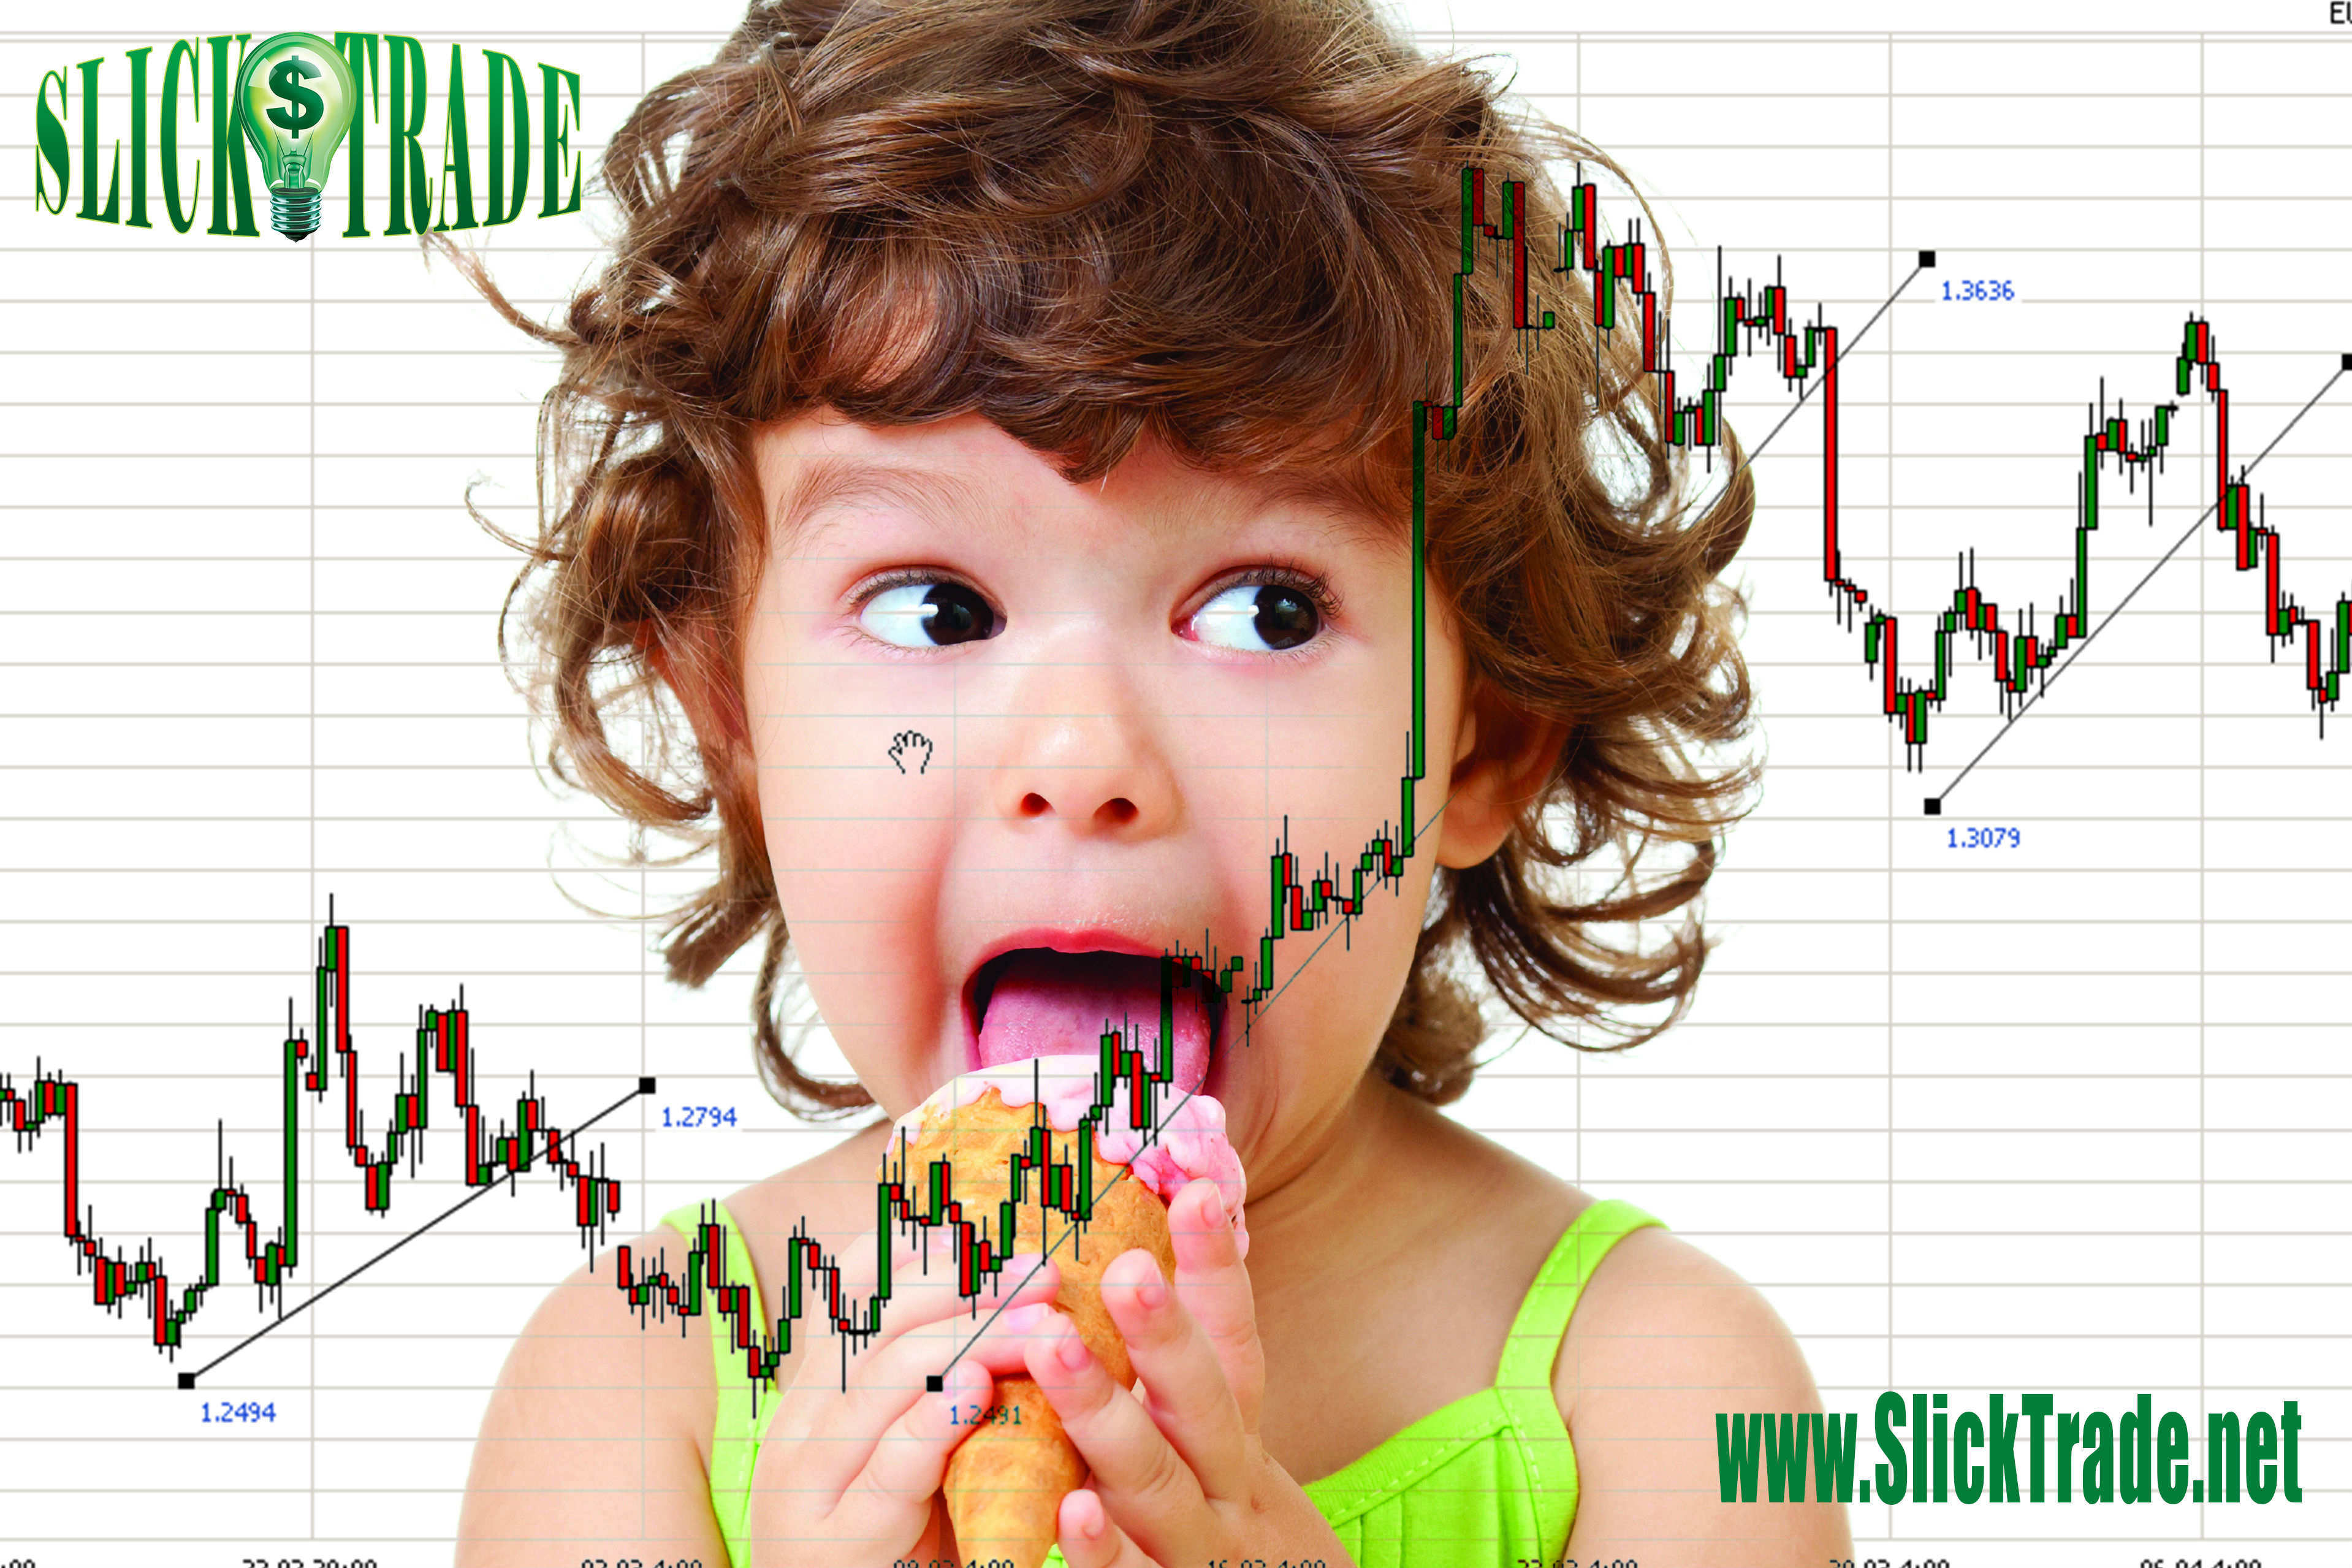 ice cream for breakfast slick trade online trading academy